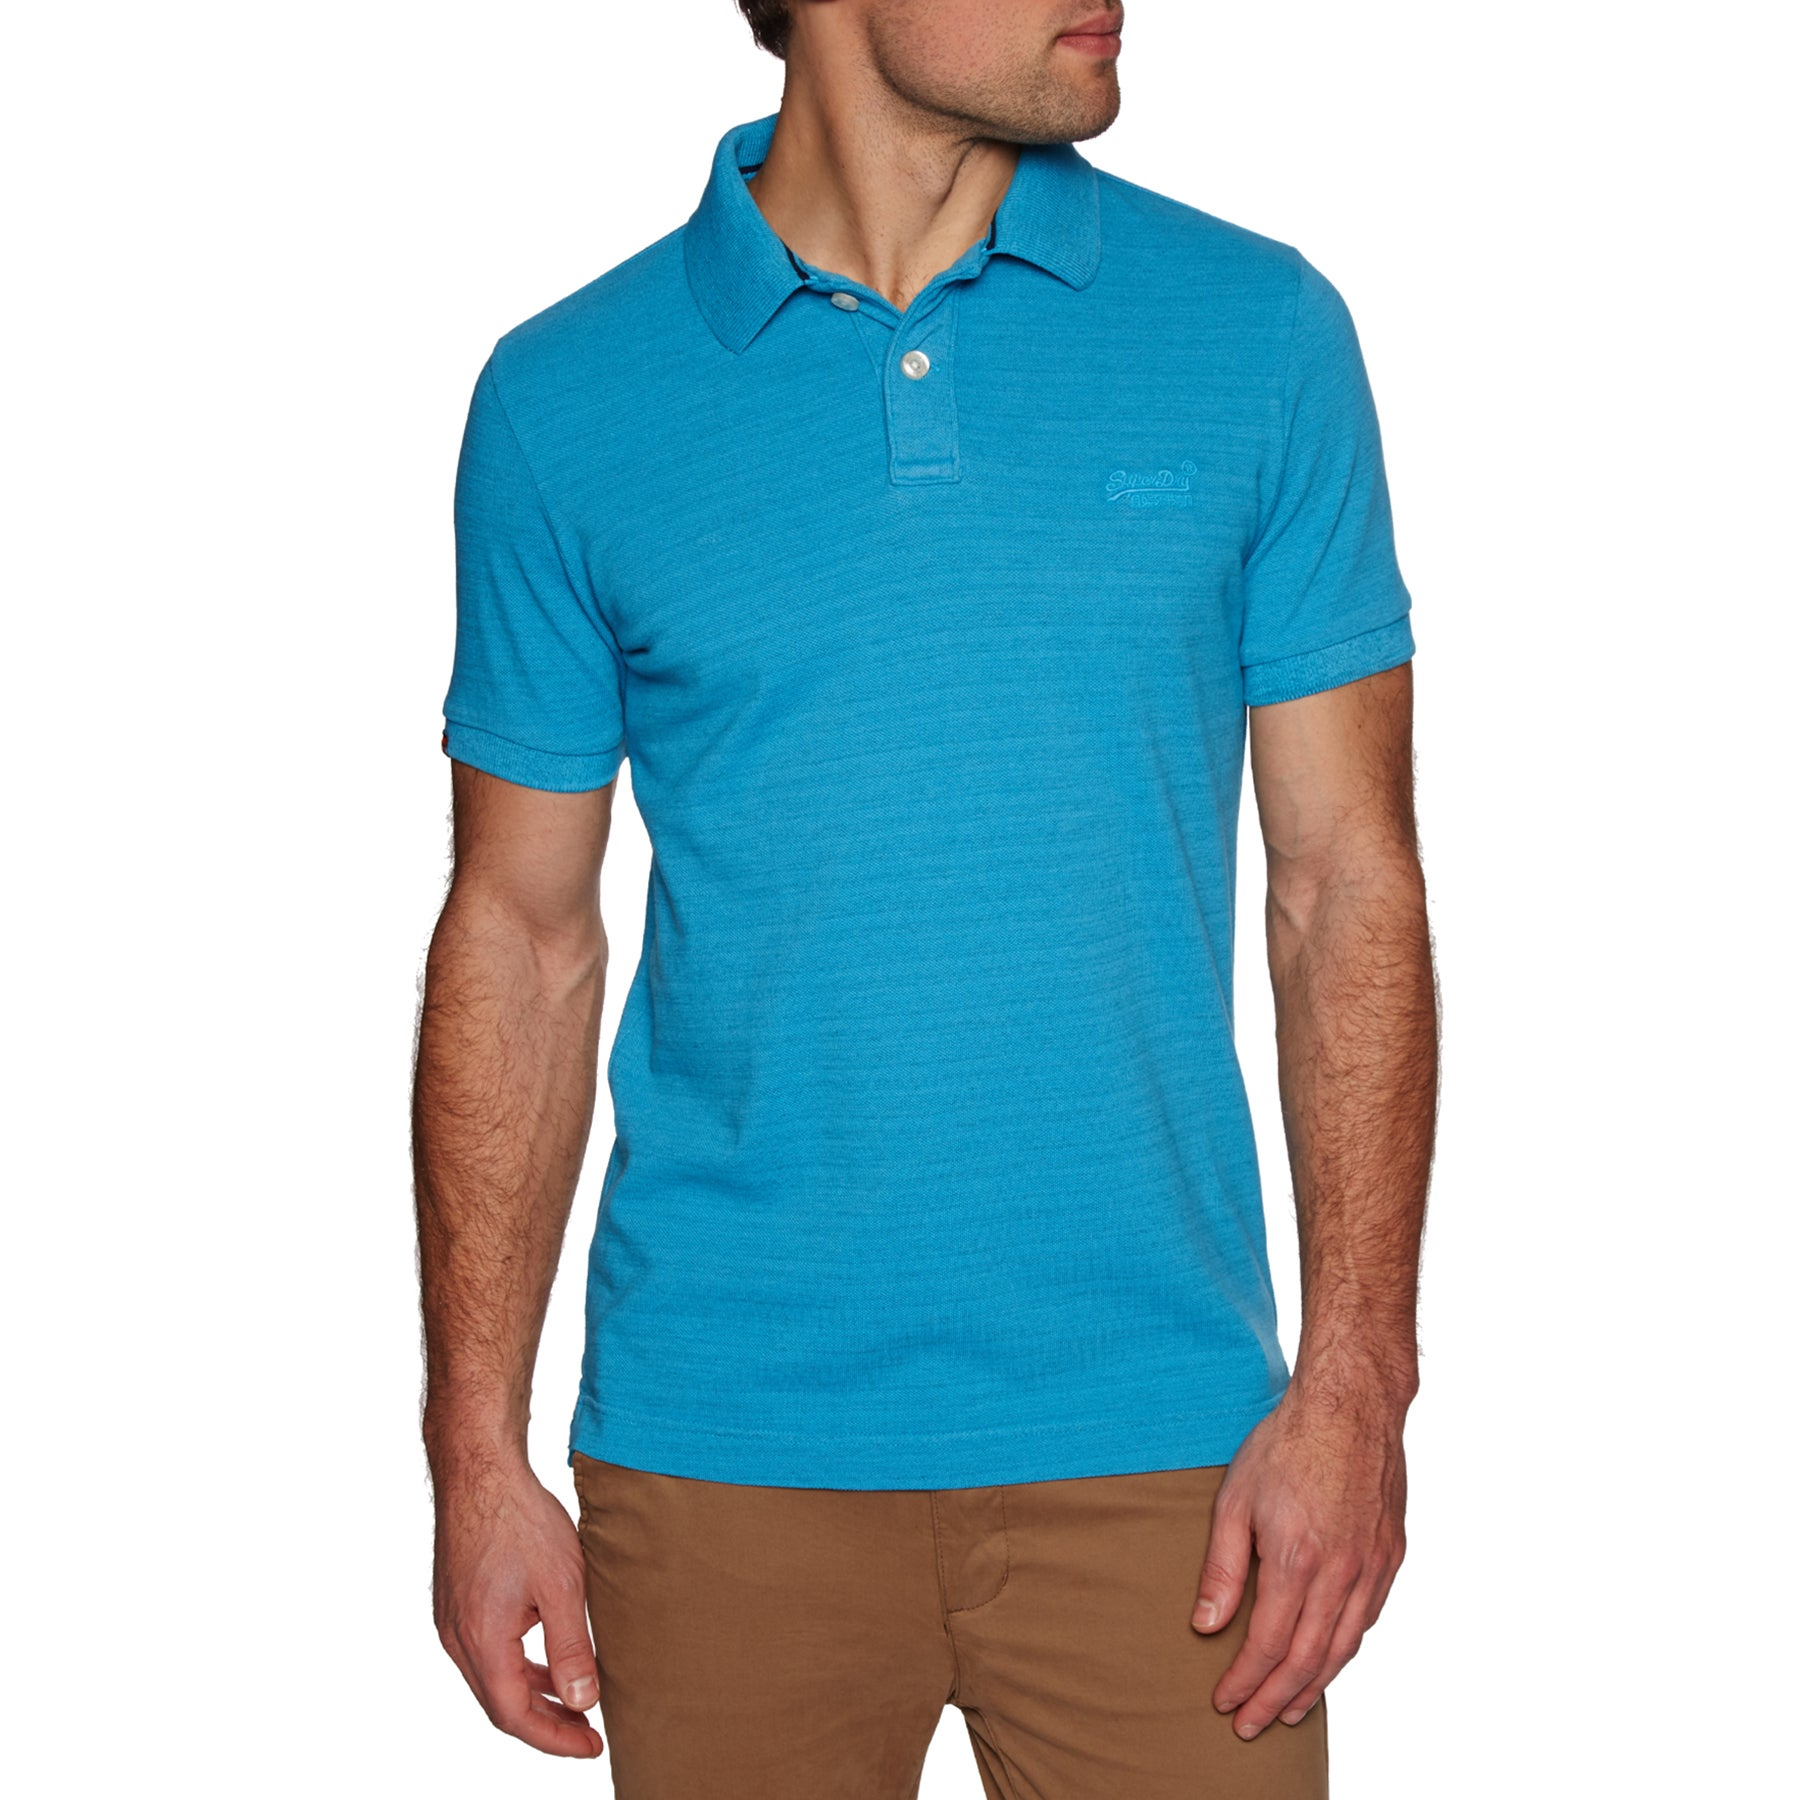 Superdry Vintage Destroyed Polo Shirt - Beach Blue Marl